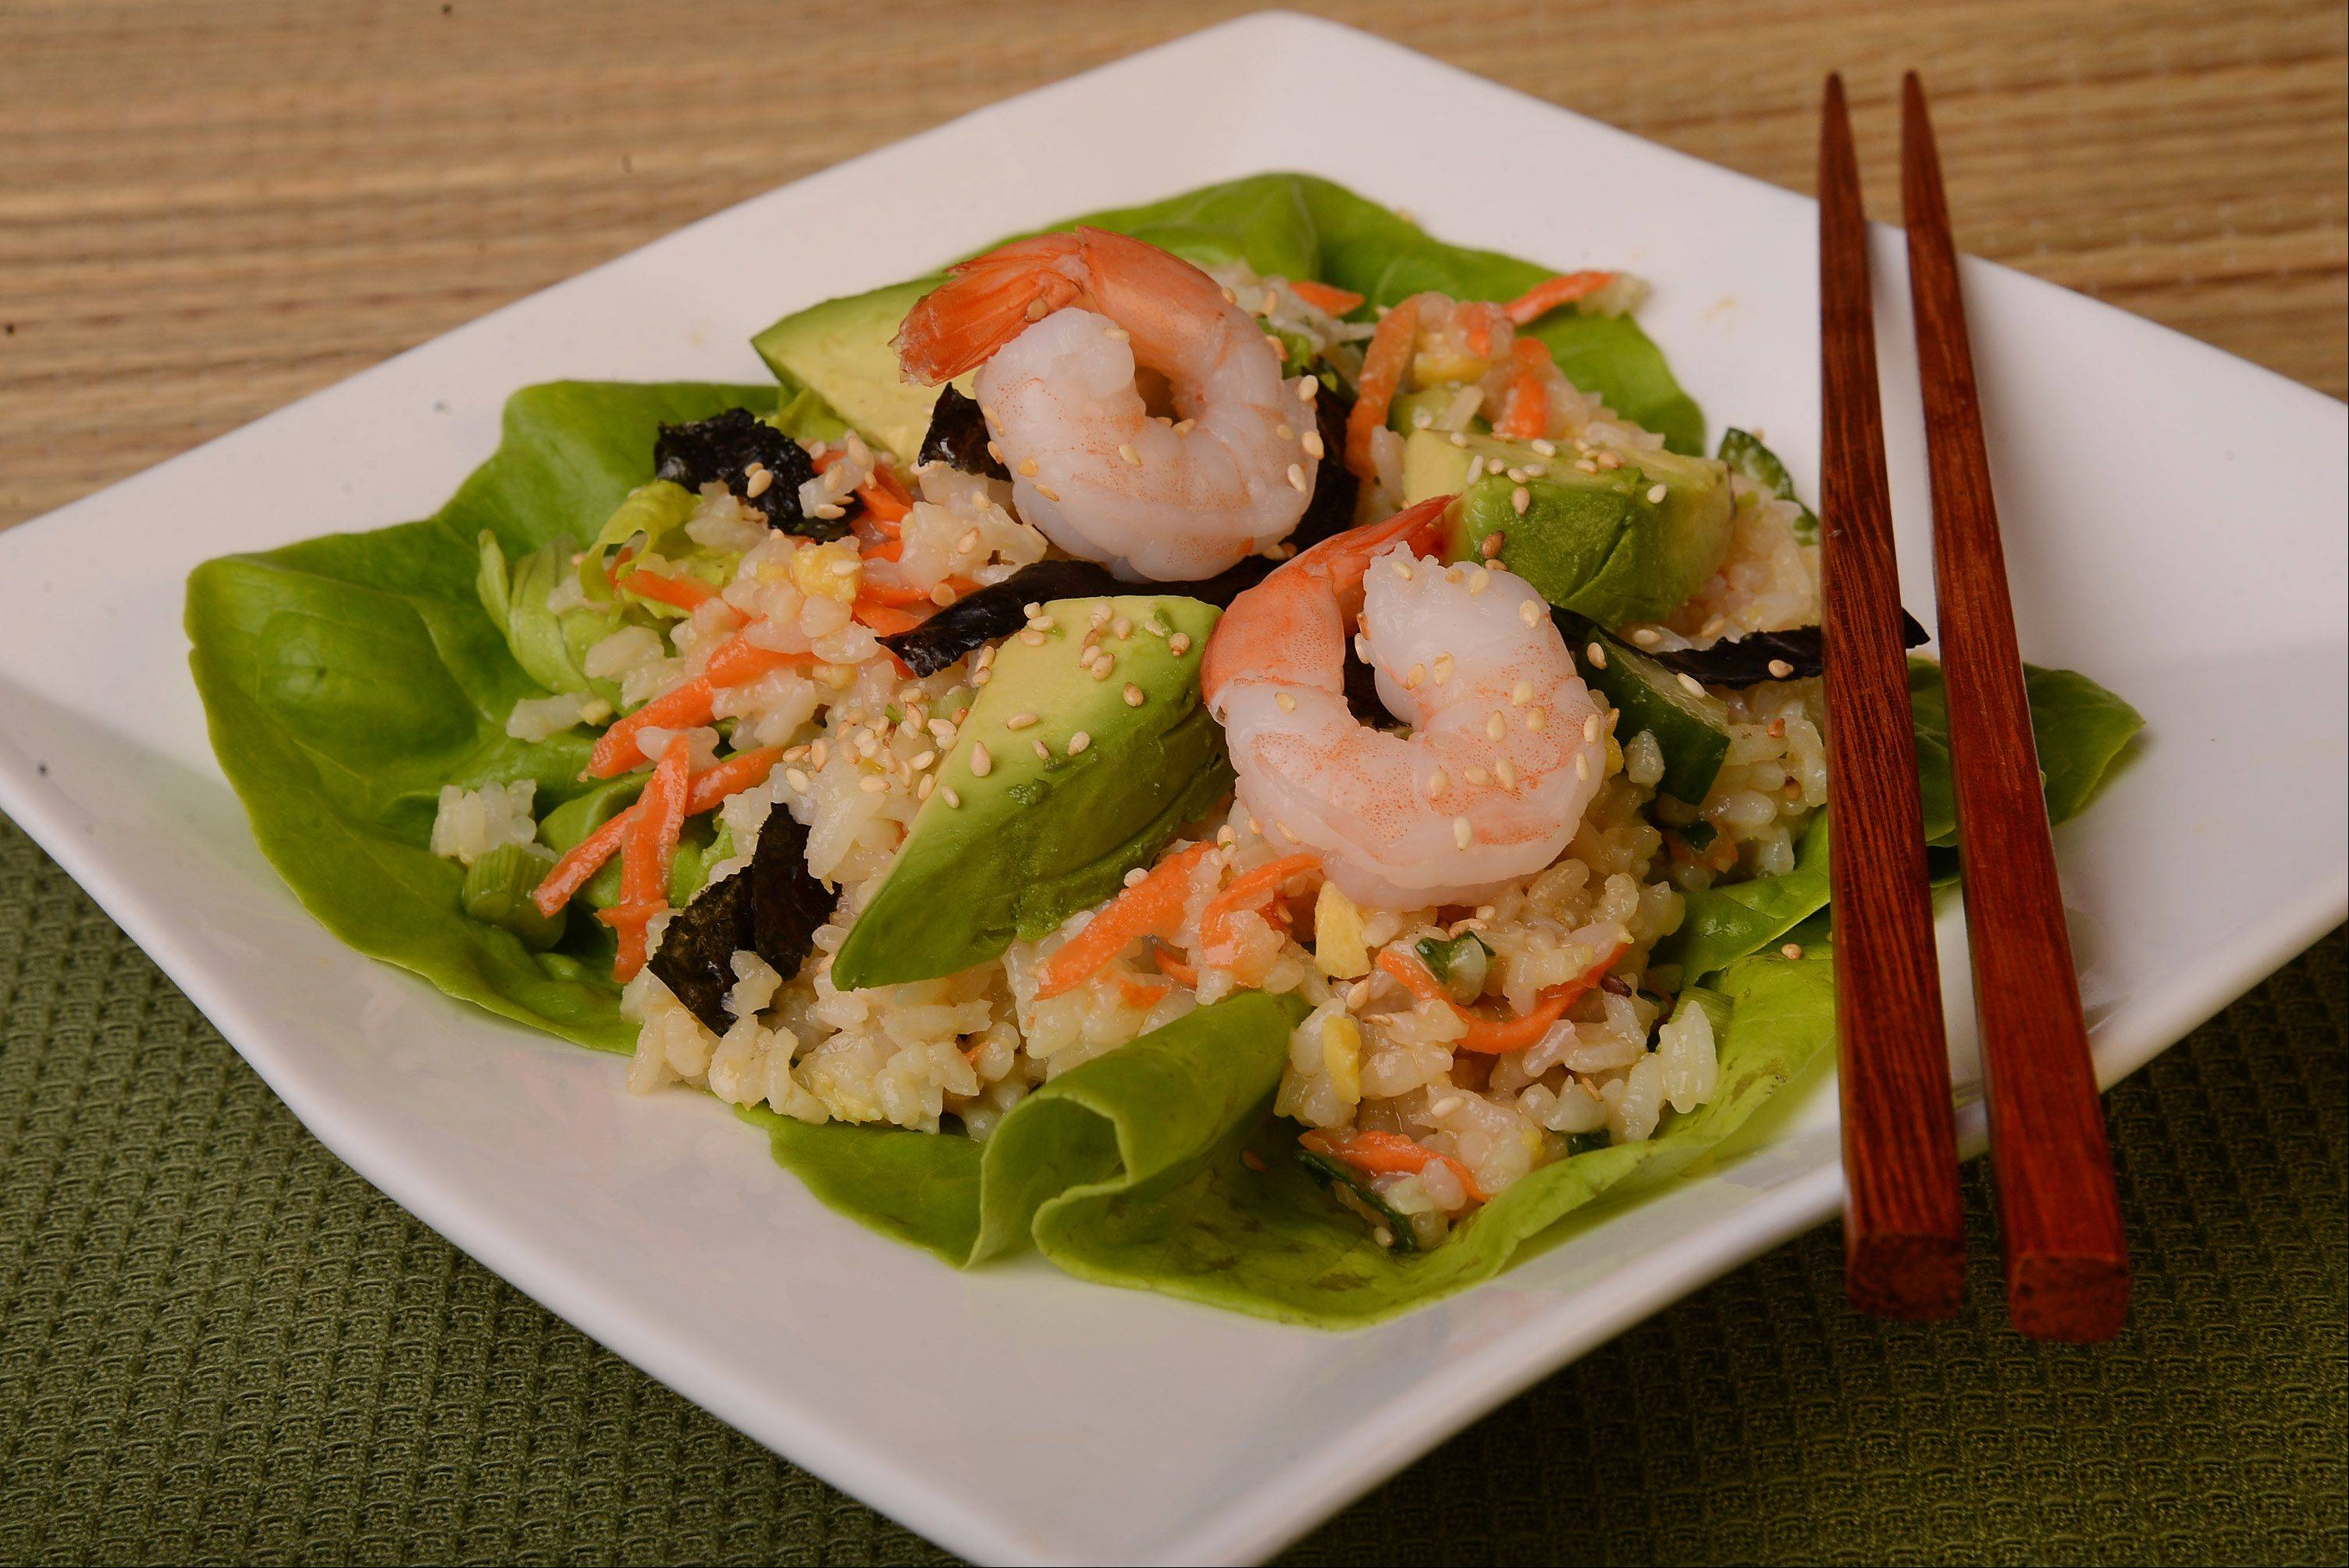 Culinary adventures: California roll morphs from sushi to salad